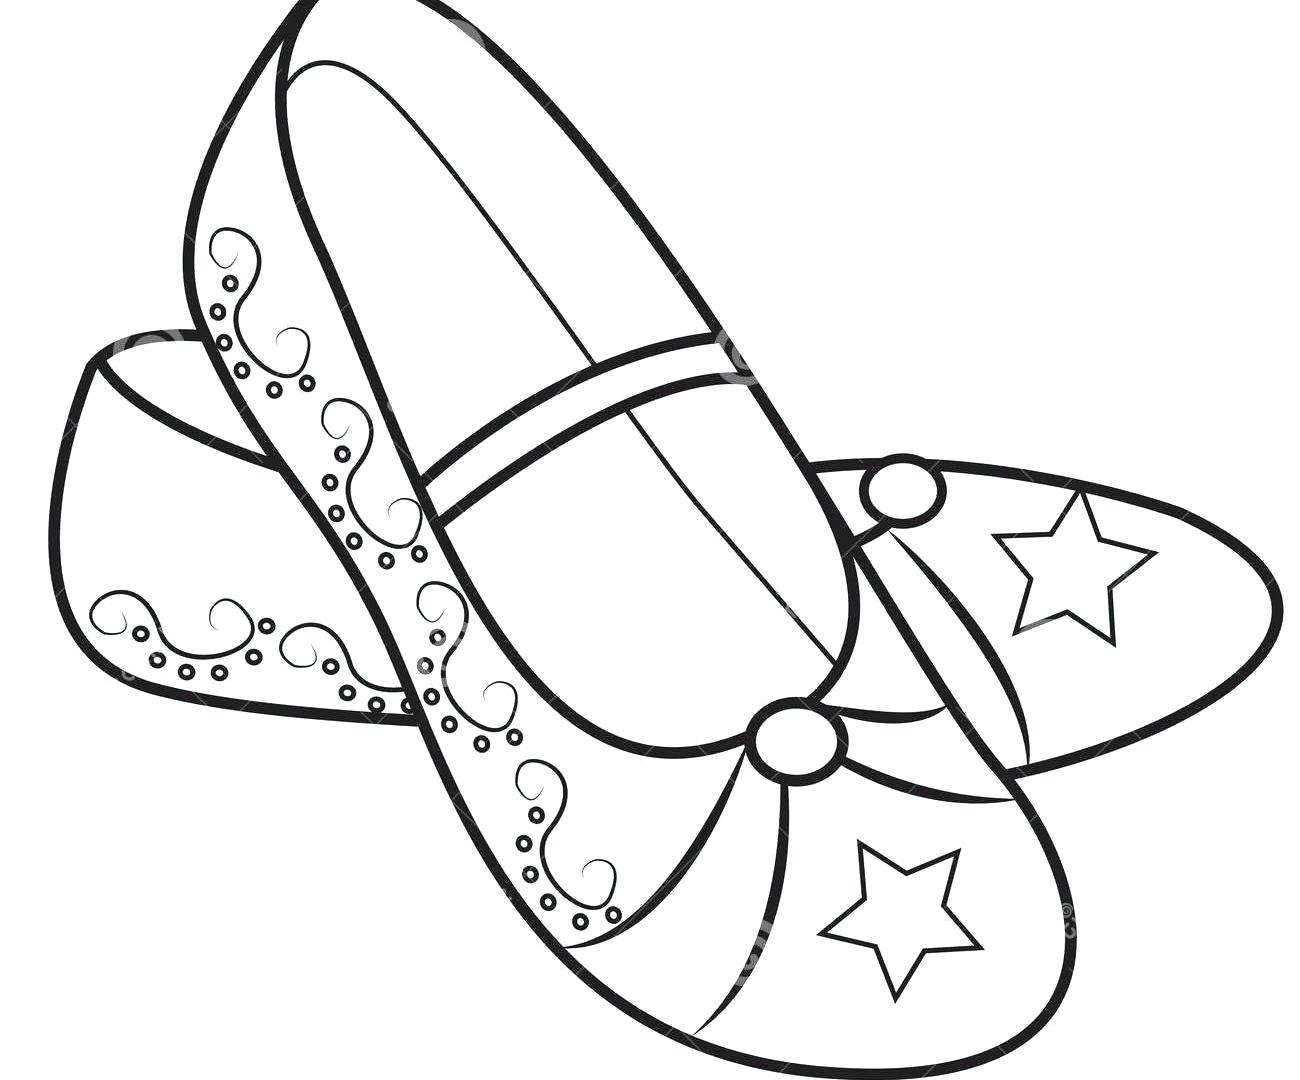 shoes pictures to color blank shoe coloring page coloring coloring pages color to shoes pictures